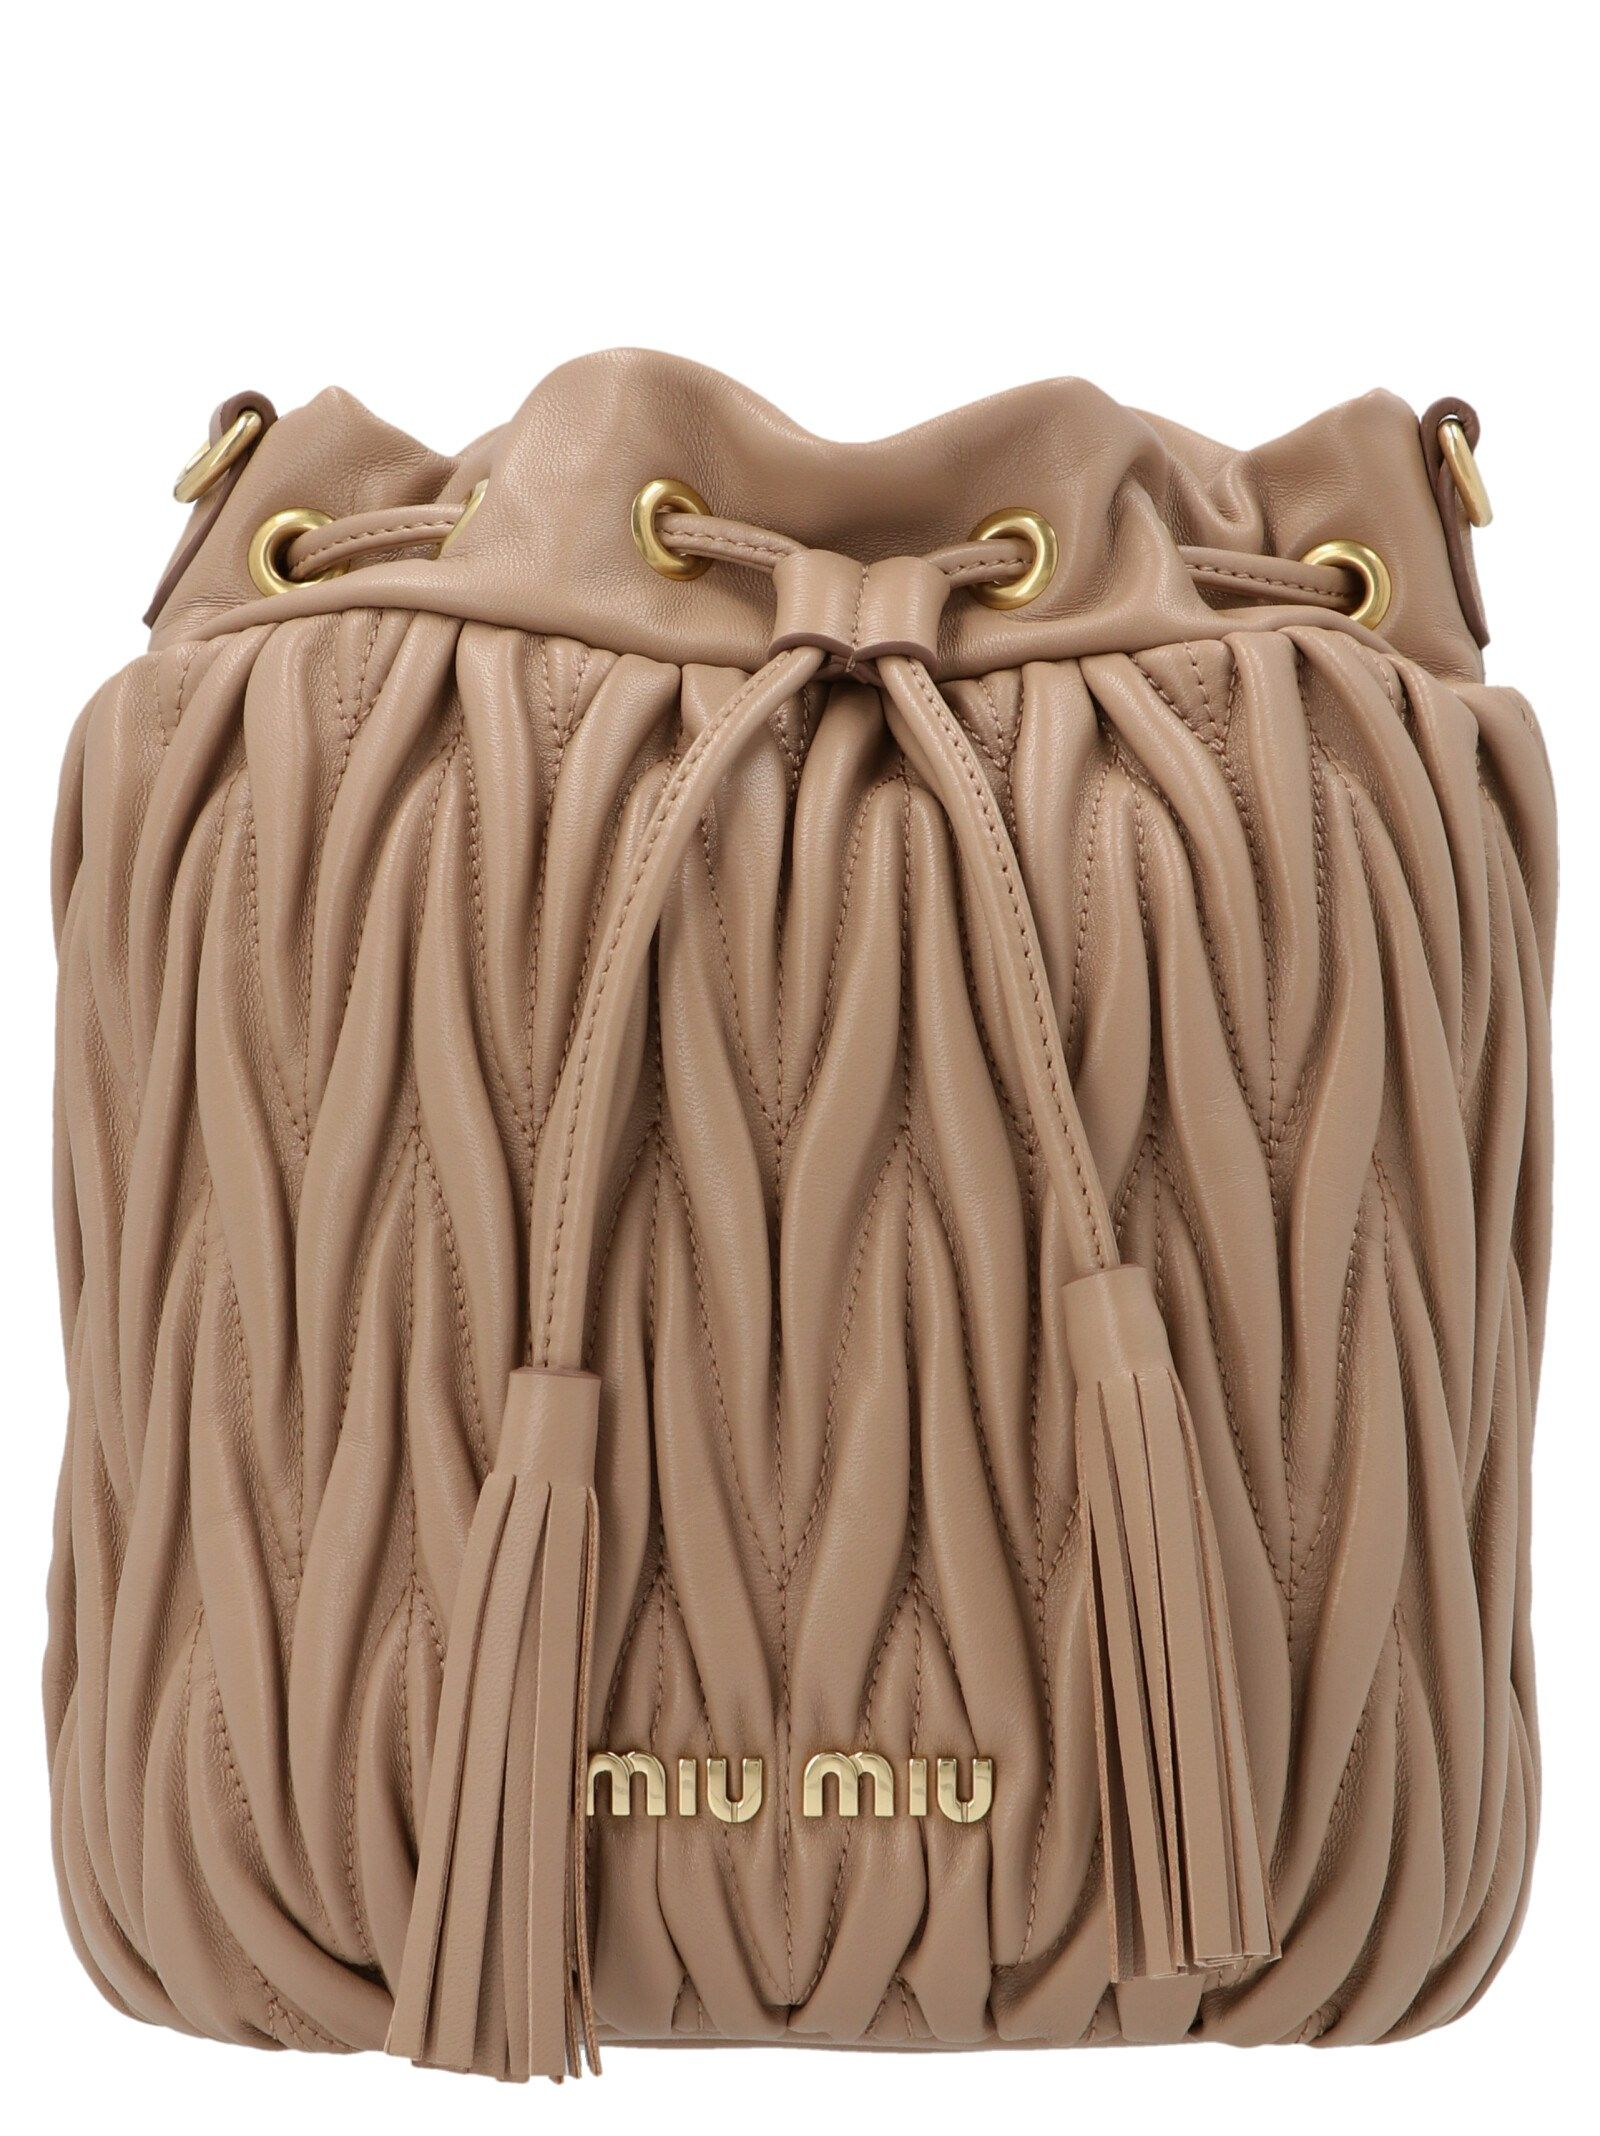 Miu Miu MIU MIU WOMEN'S 5BE014N88F0770 BEIGE OTHER MATERIALS SHOULDER BAG